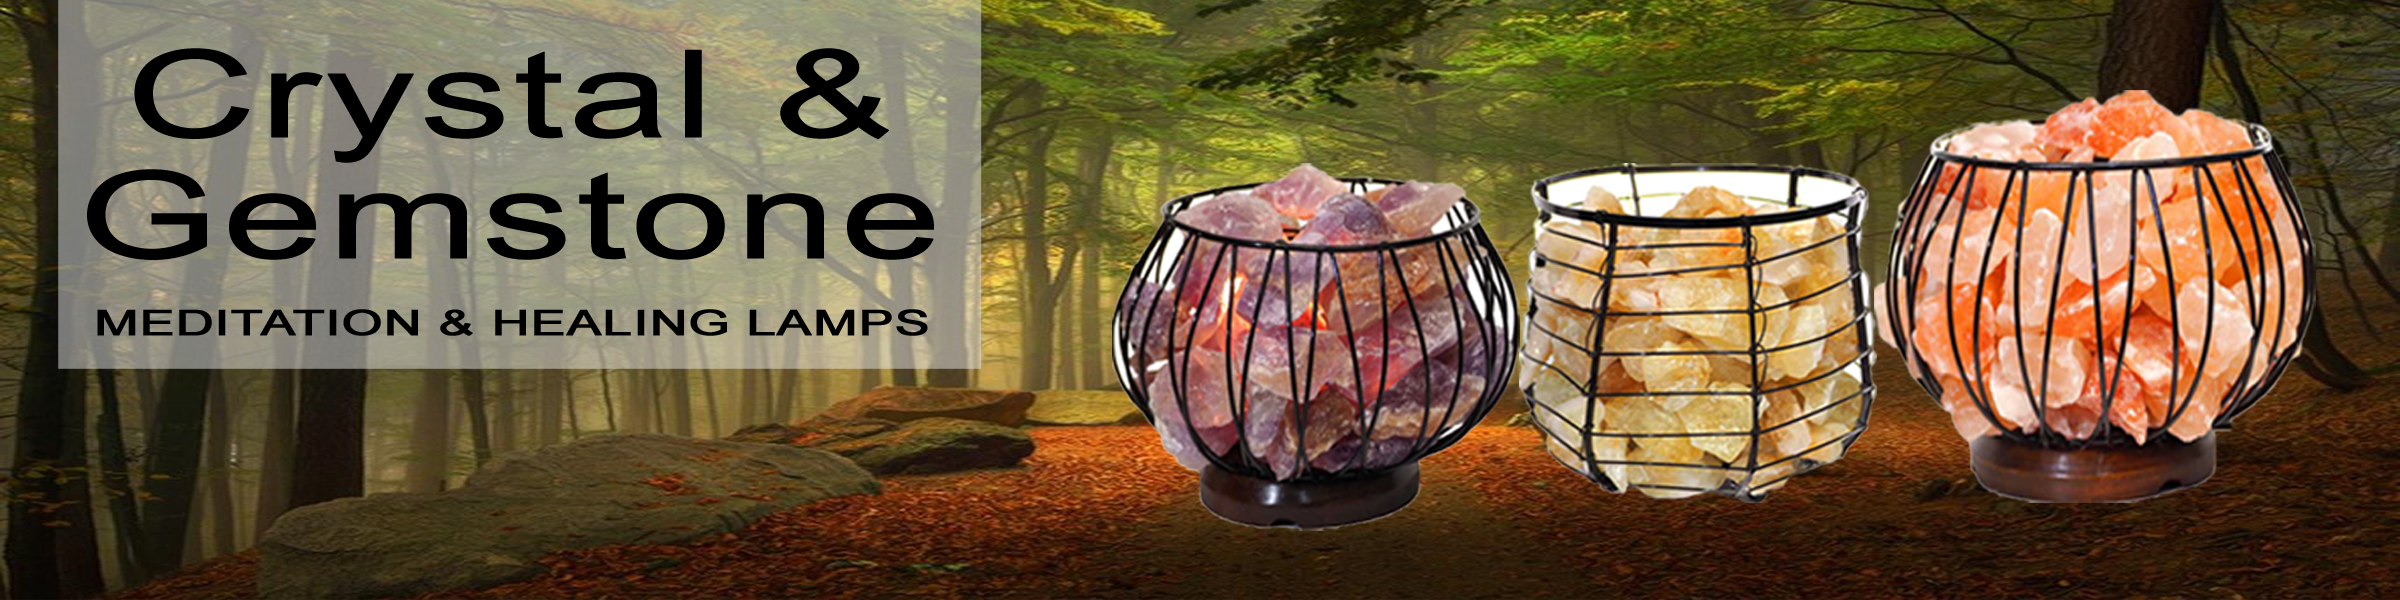 Crystal and Gemstone Meditation and Healing Lamps